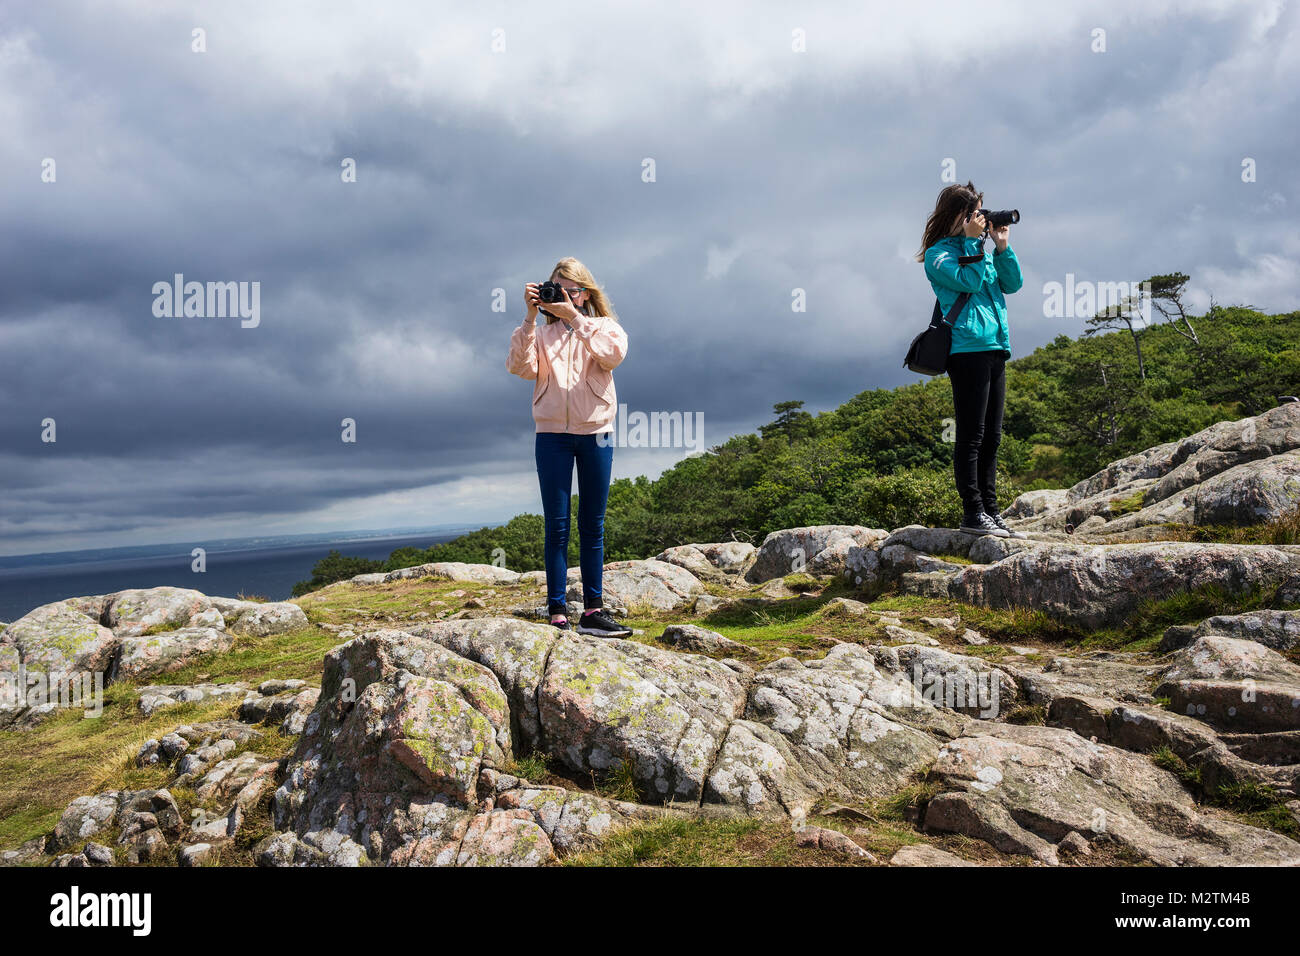 Two women taking photos in rural Sweden - Stock Image